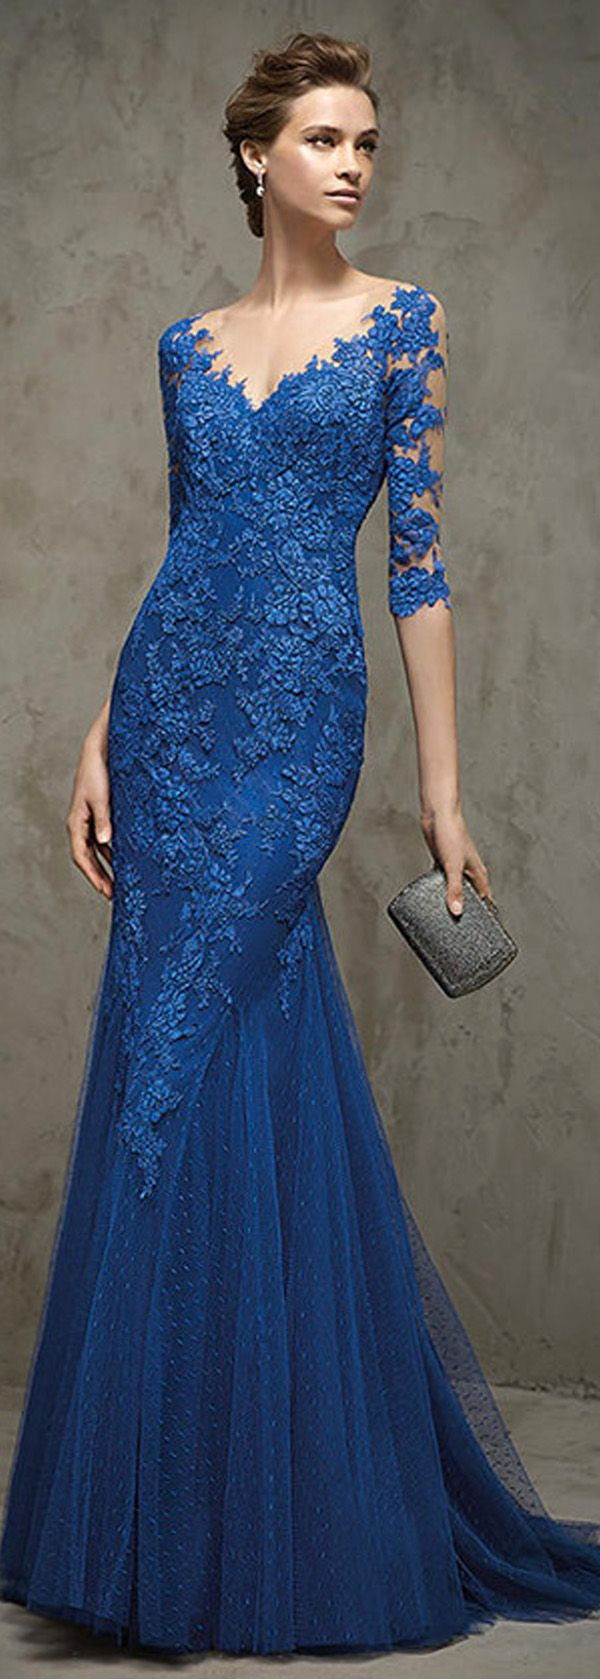 Best 20+ Evening dresses ideas on Pinterest | Evening gowns, Long ...